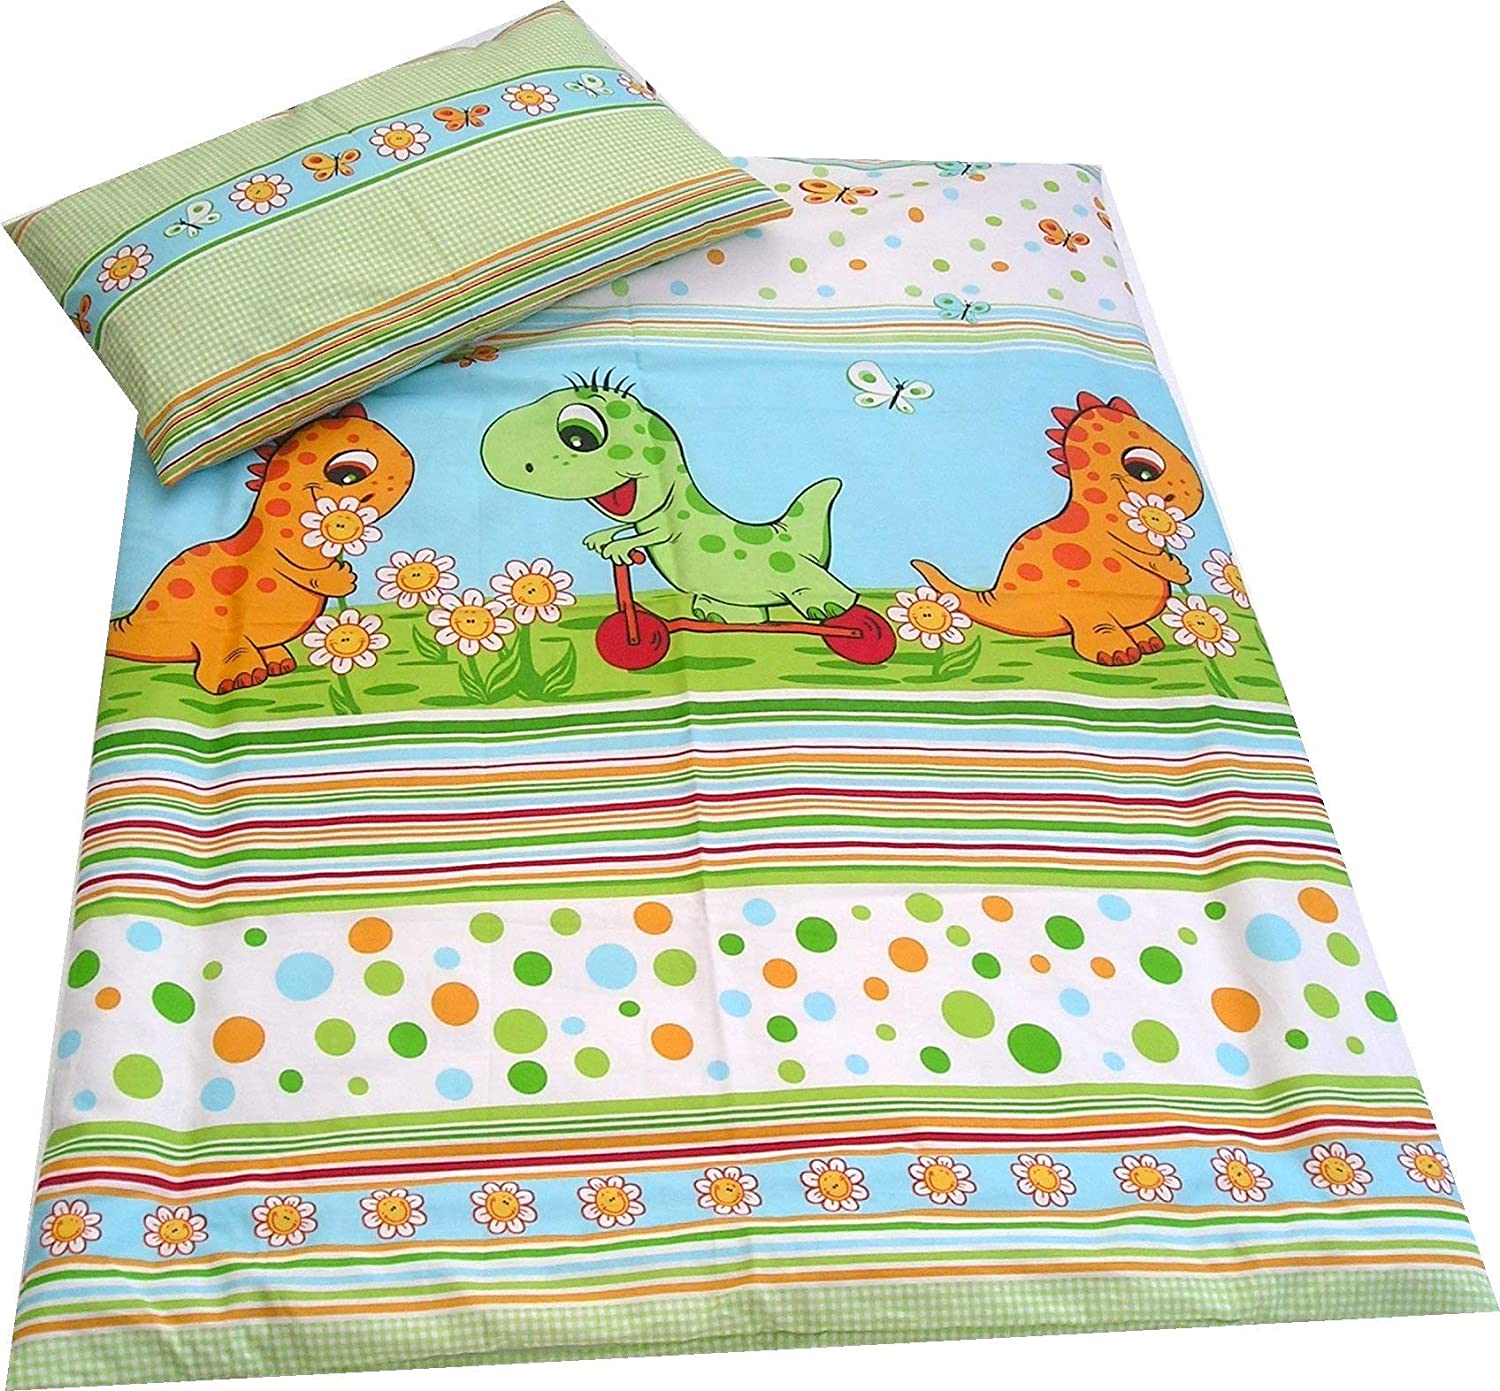 babies-island Children's Bedding set GREEN DINOSAURS Duvet Cover and Pillowcase/CURTAINS Cot (90x120 cm)